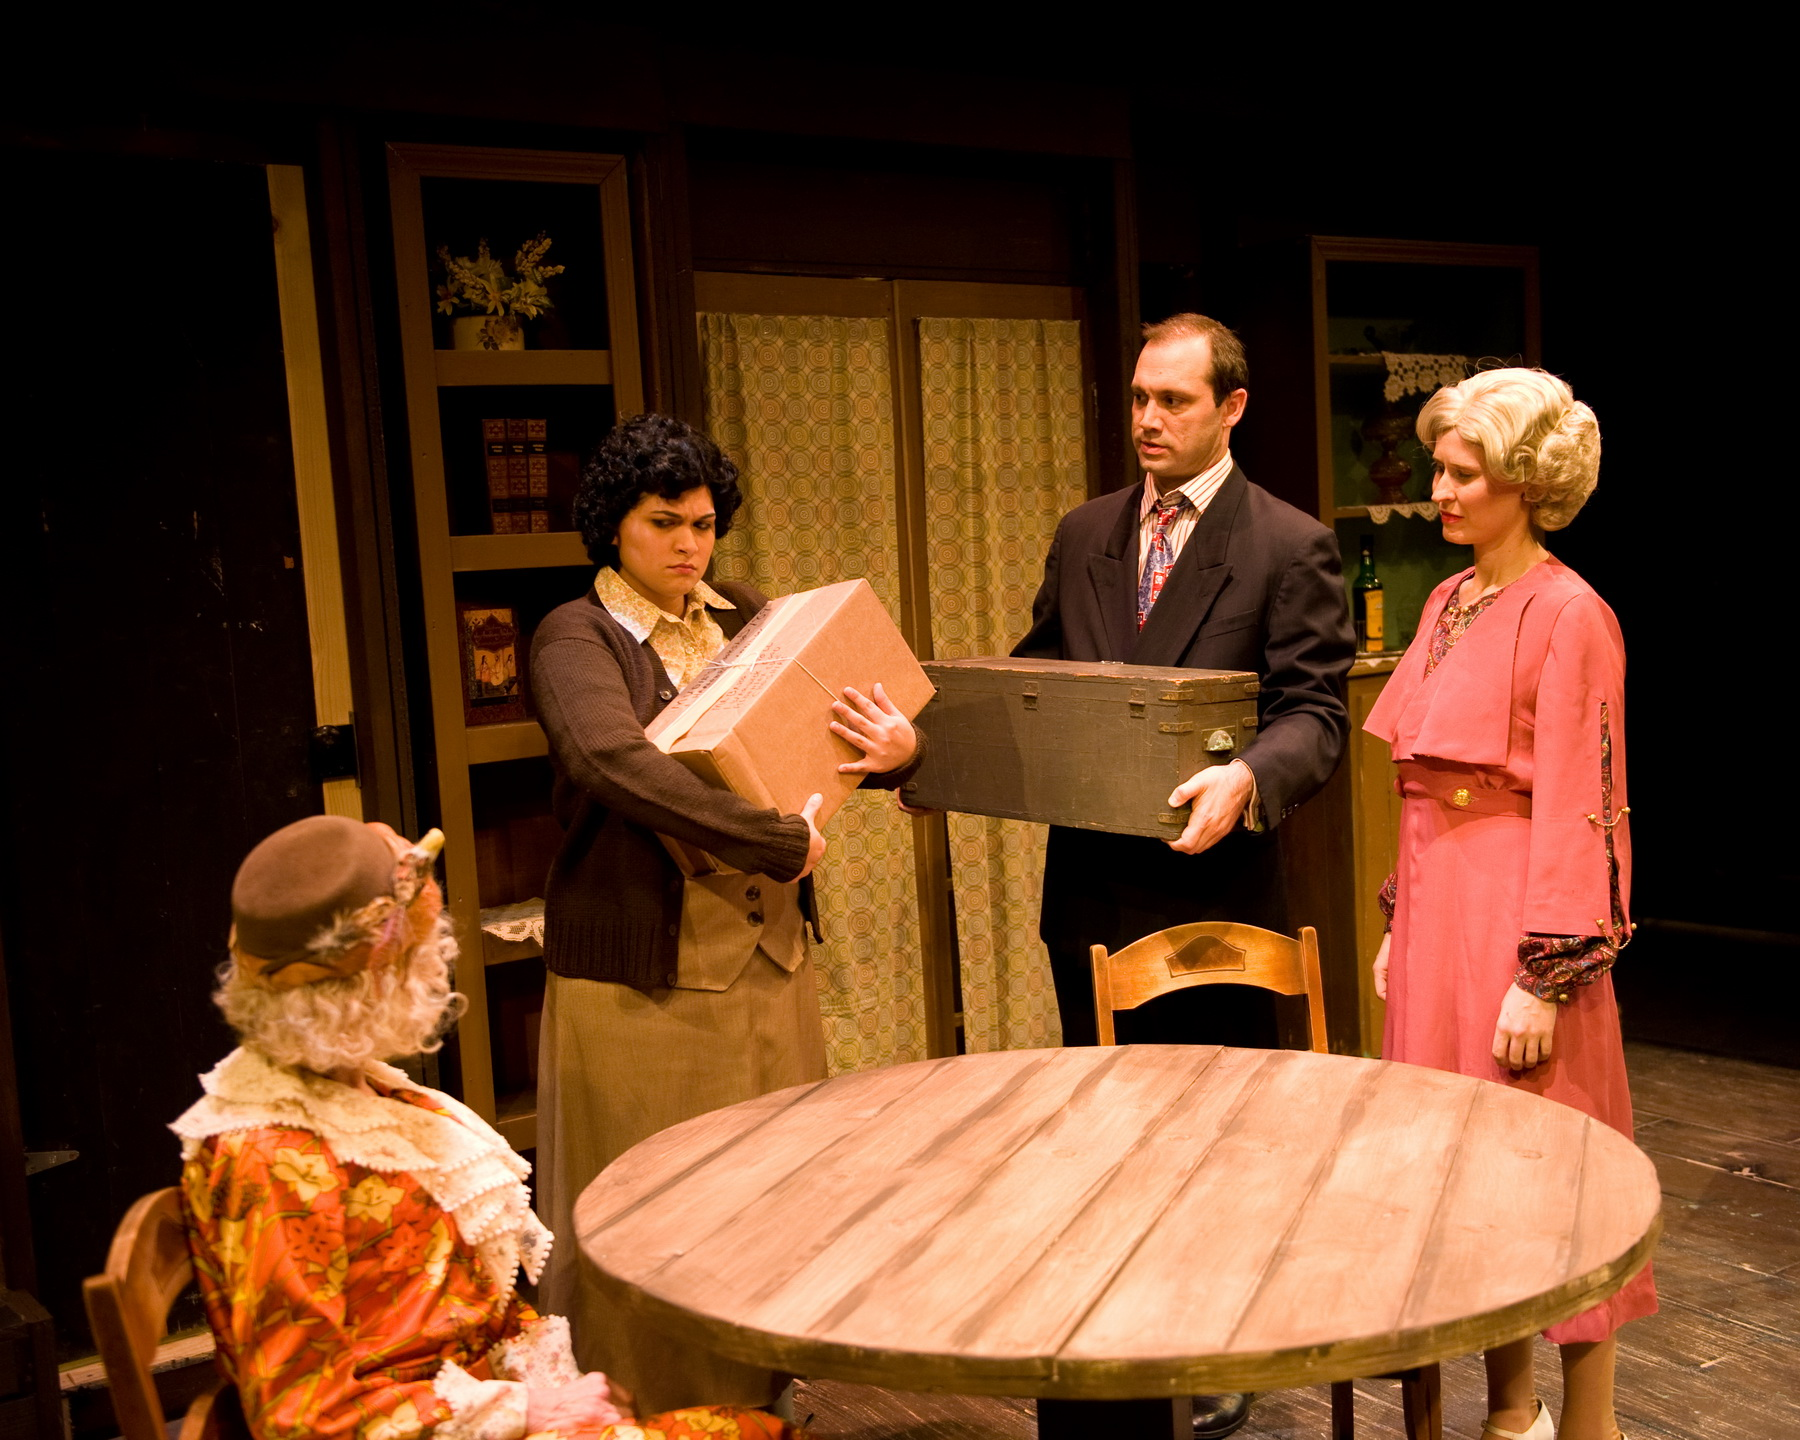 Marcia Mandell as Louise Garrard (Aunt Lou Lou), Tania Benites as Ethel, Jarred Nichols as Bruce Lovell and Jill Kenderes as Cecily Harrington